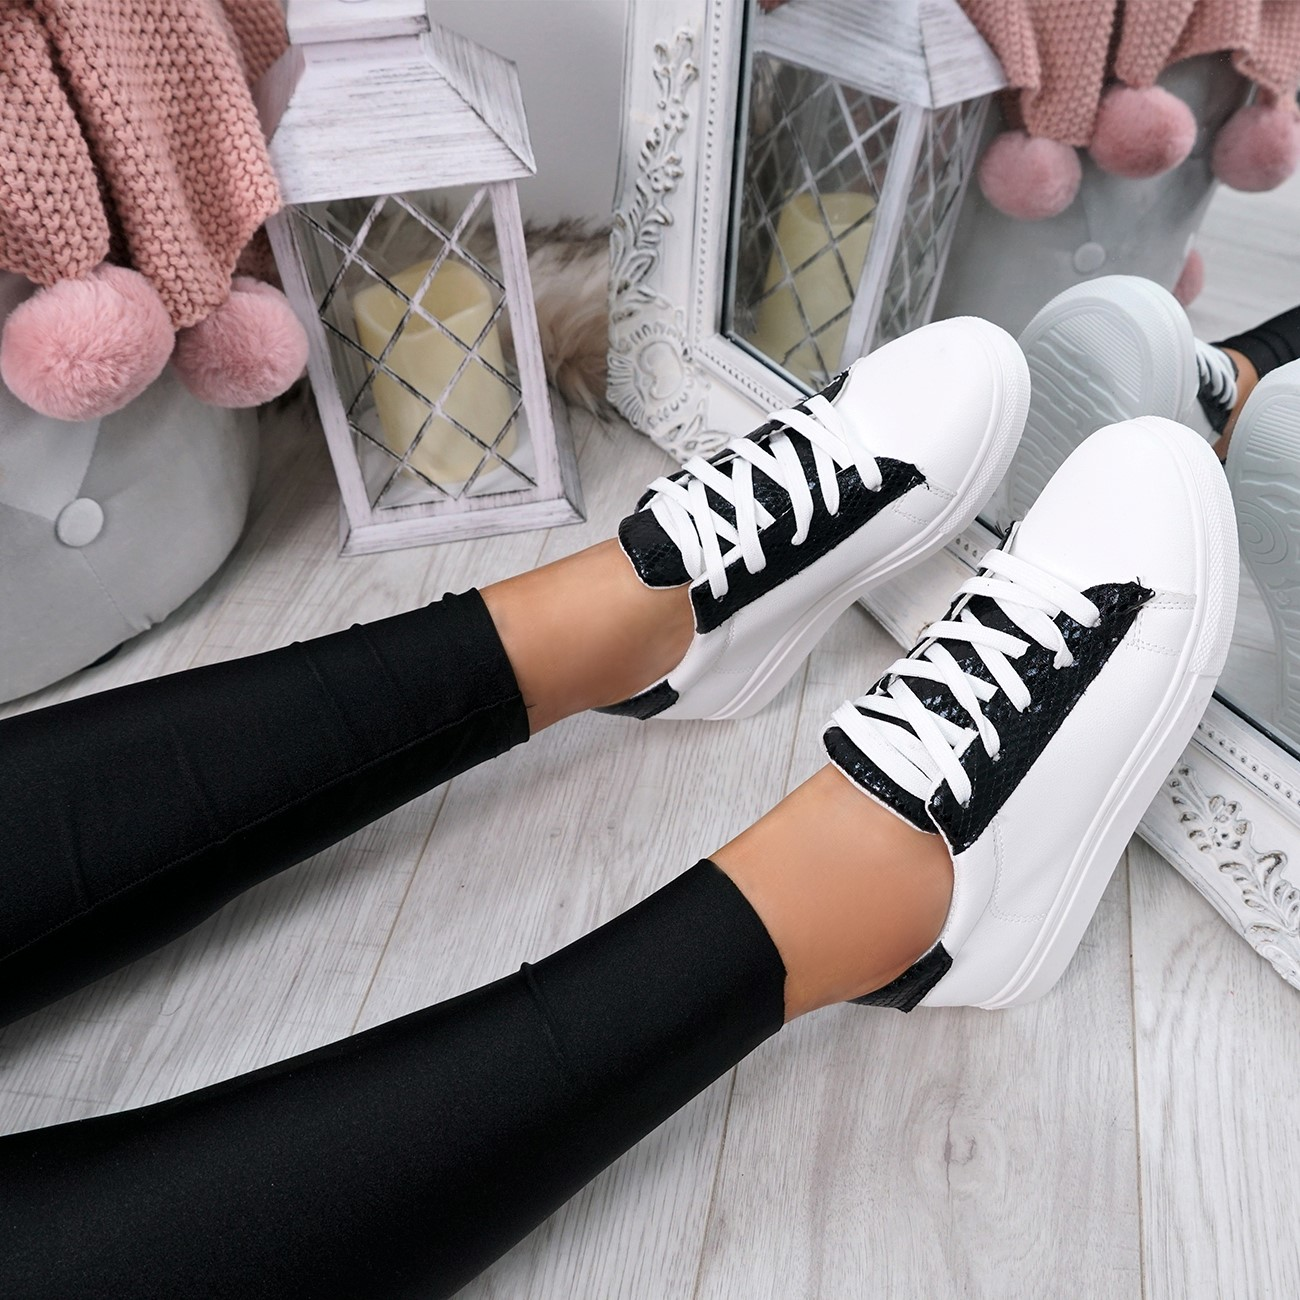 WOMENS-LADIES-SNAKE-SKIN-GLITTER-LACE-UP-TRAINERS-PLIMSOLLS-SNEAKERS-SHOES thumbnail 7